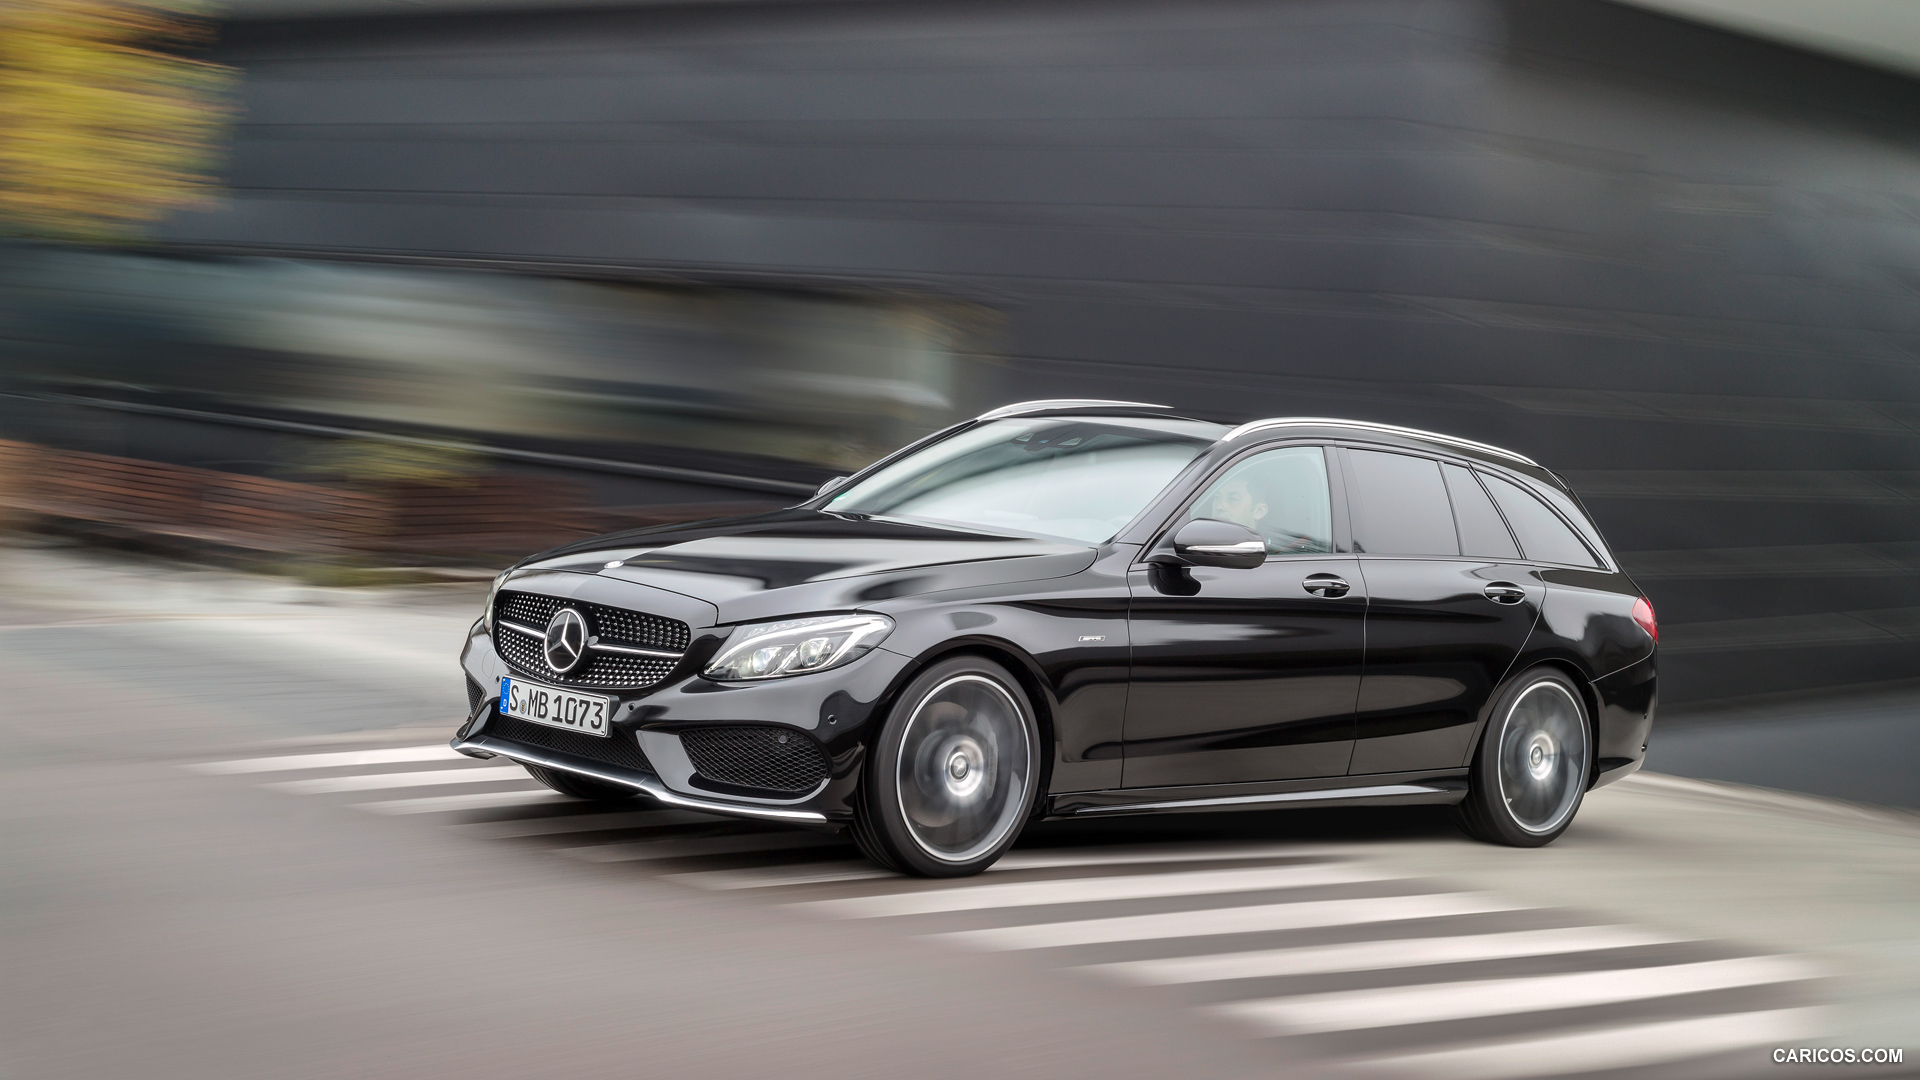 Mercedes Benz C450 Amg Estate Photos Photogallery With